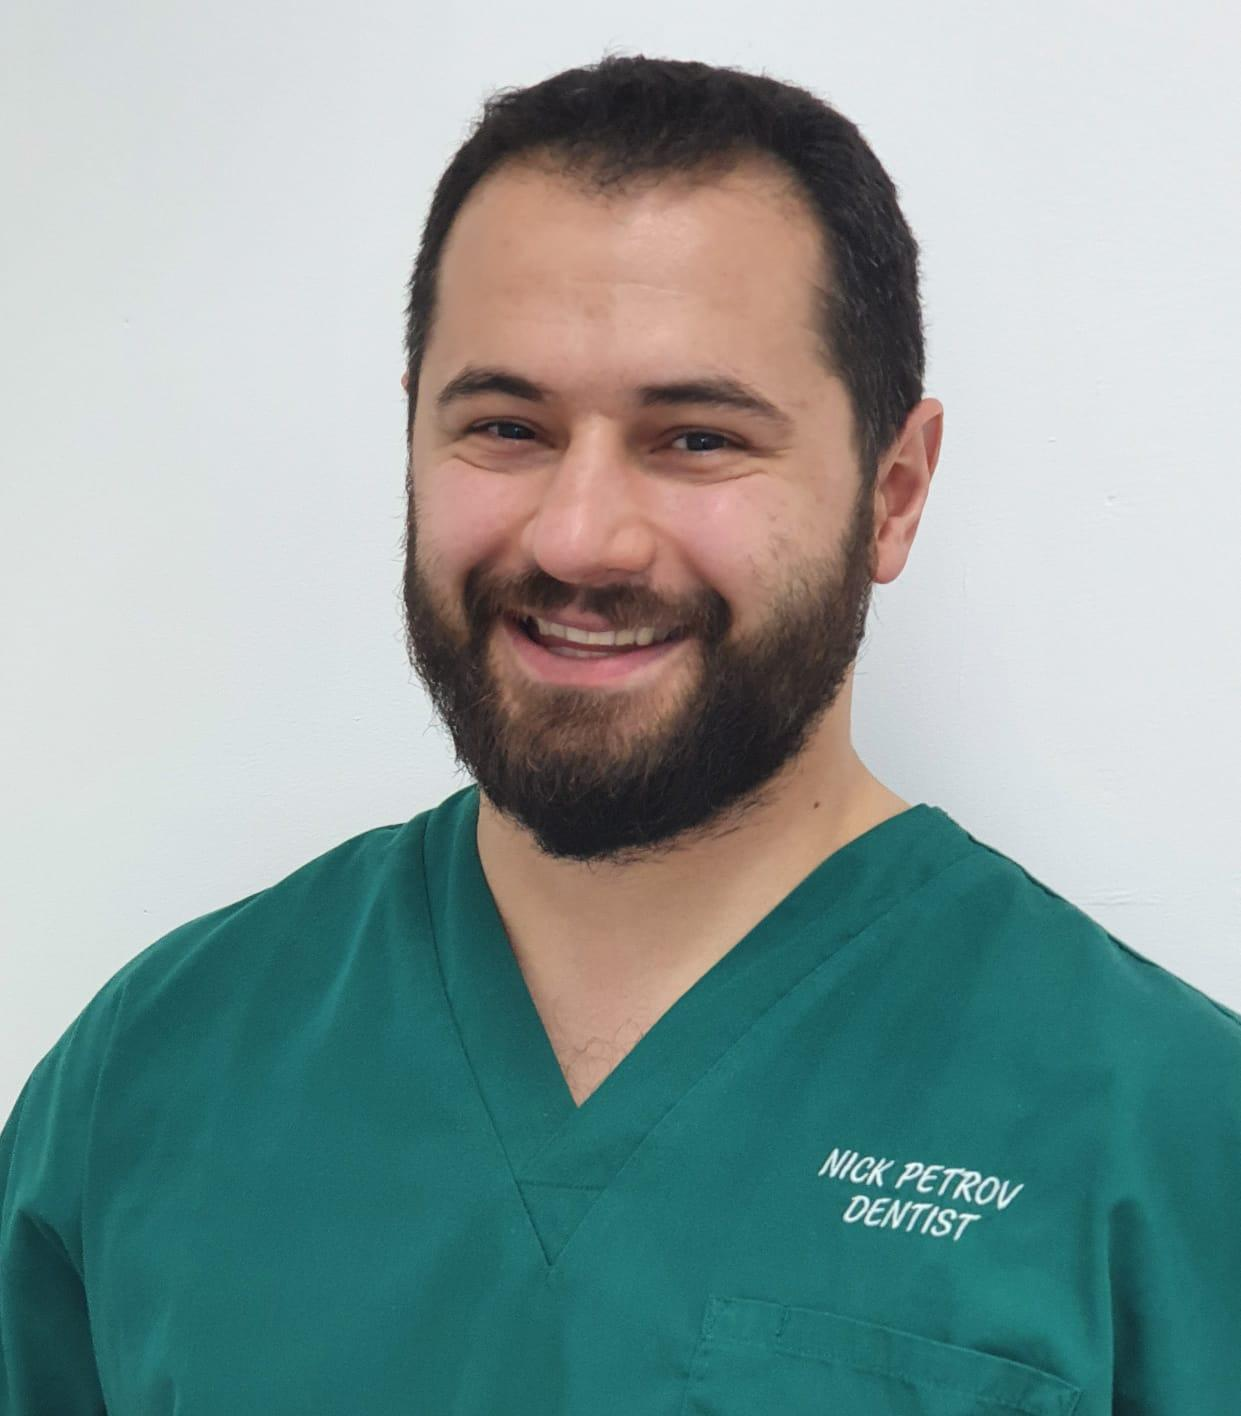 Dr Nik Petrov is a Dentist at Etwall Dental Practice